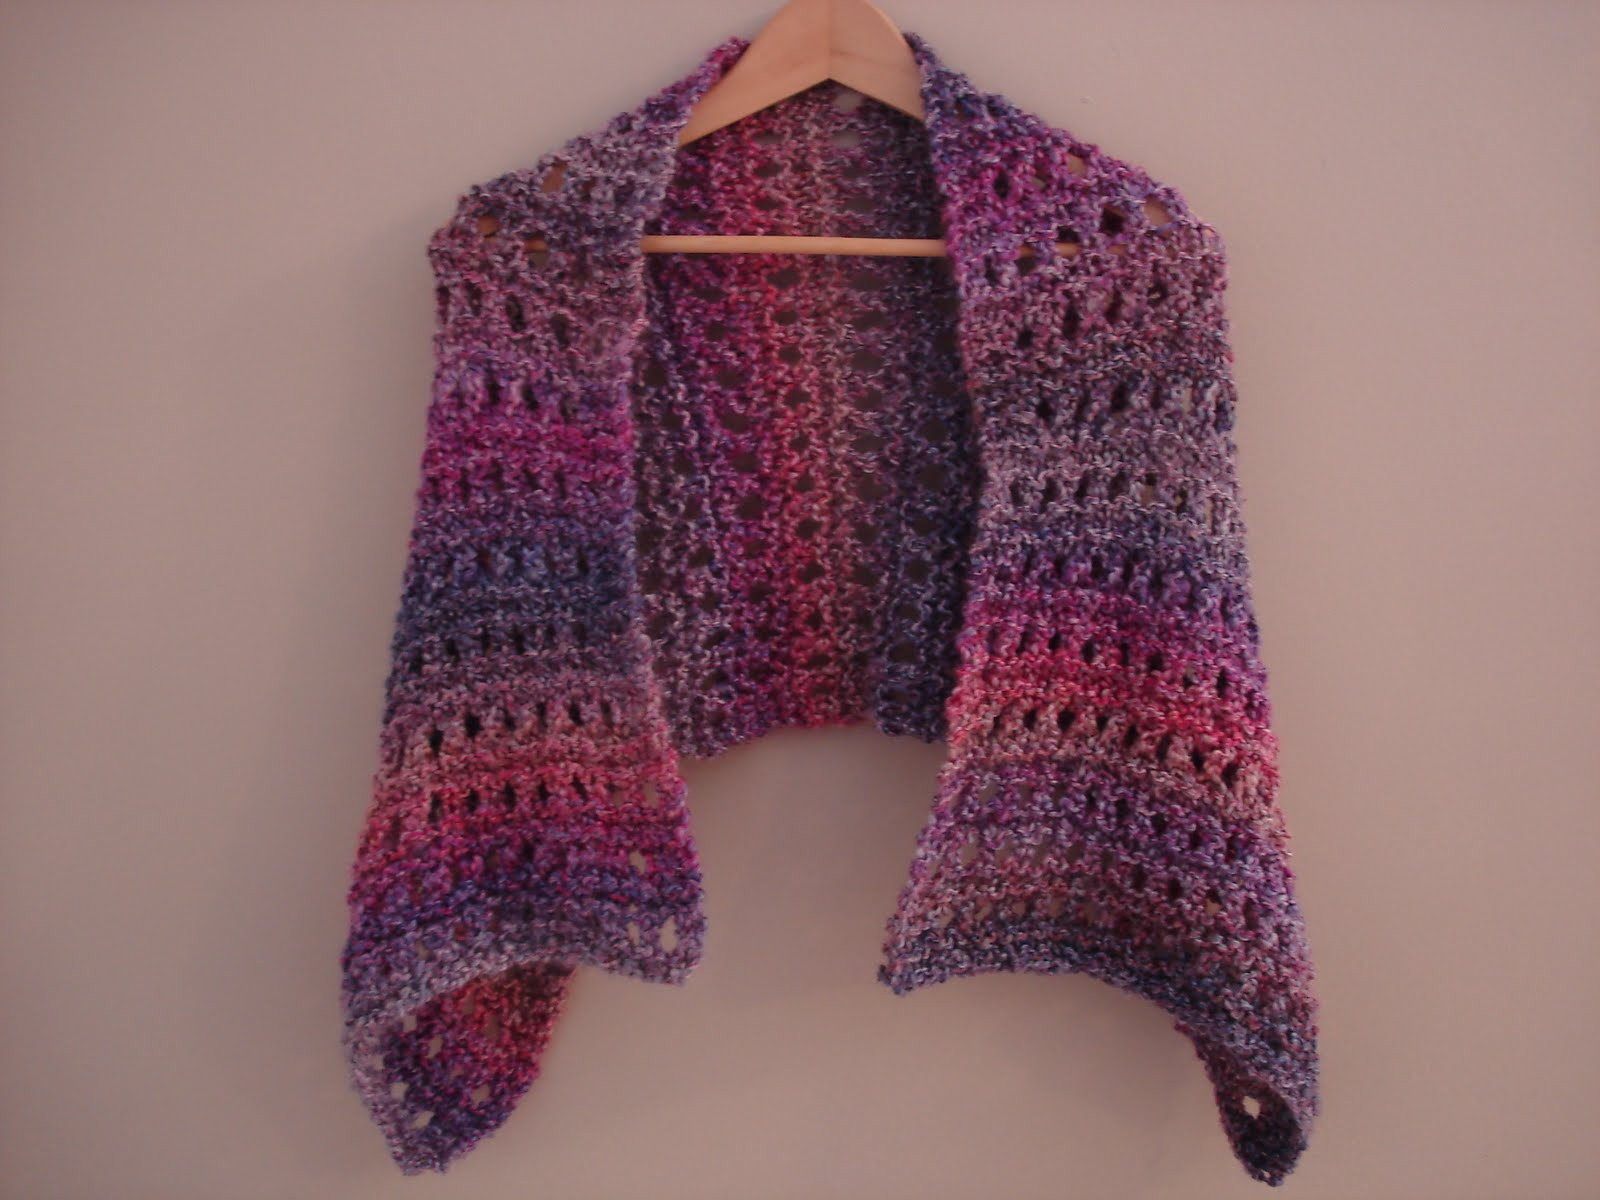 Knitting Stitches Wrap 3 : Fiber Flux: Free Knitting Pattern...A Peaceful Shawl!